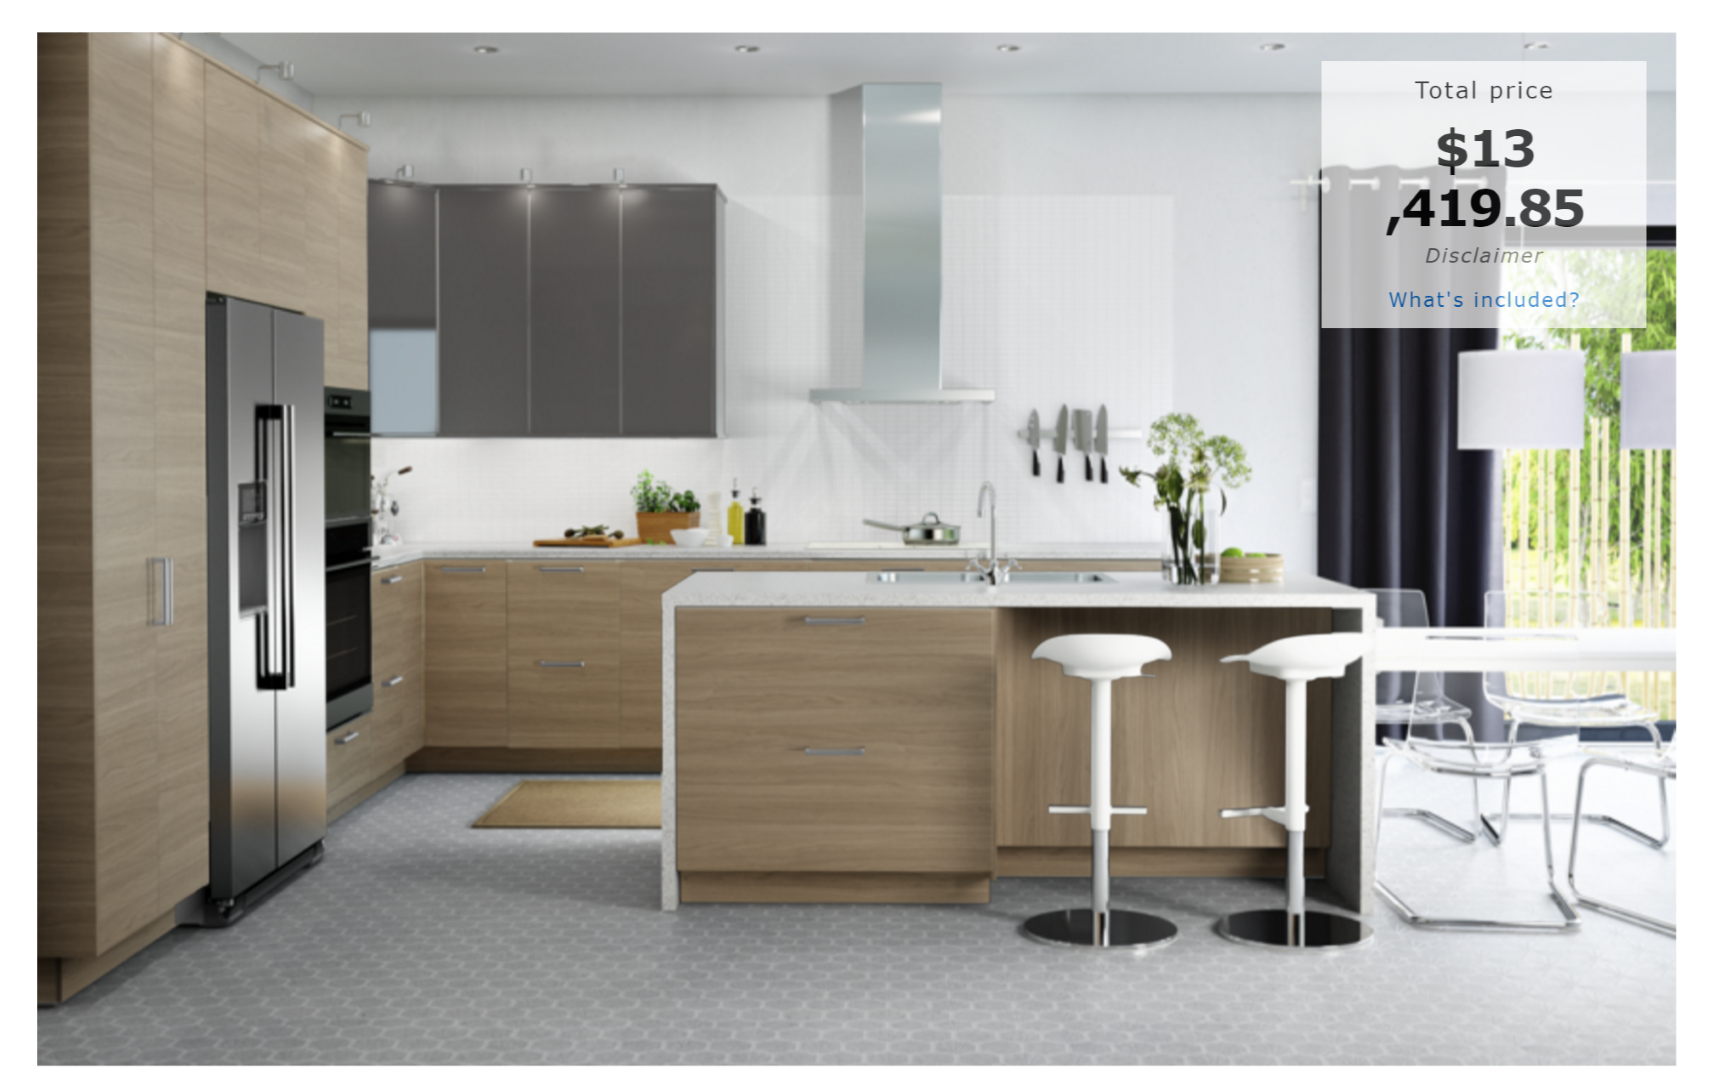 ikea kitchen cost average 10 215 10 kitchen cabinets ikea roselawnlutheran 938